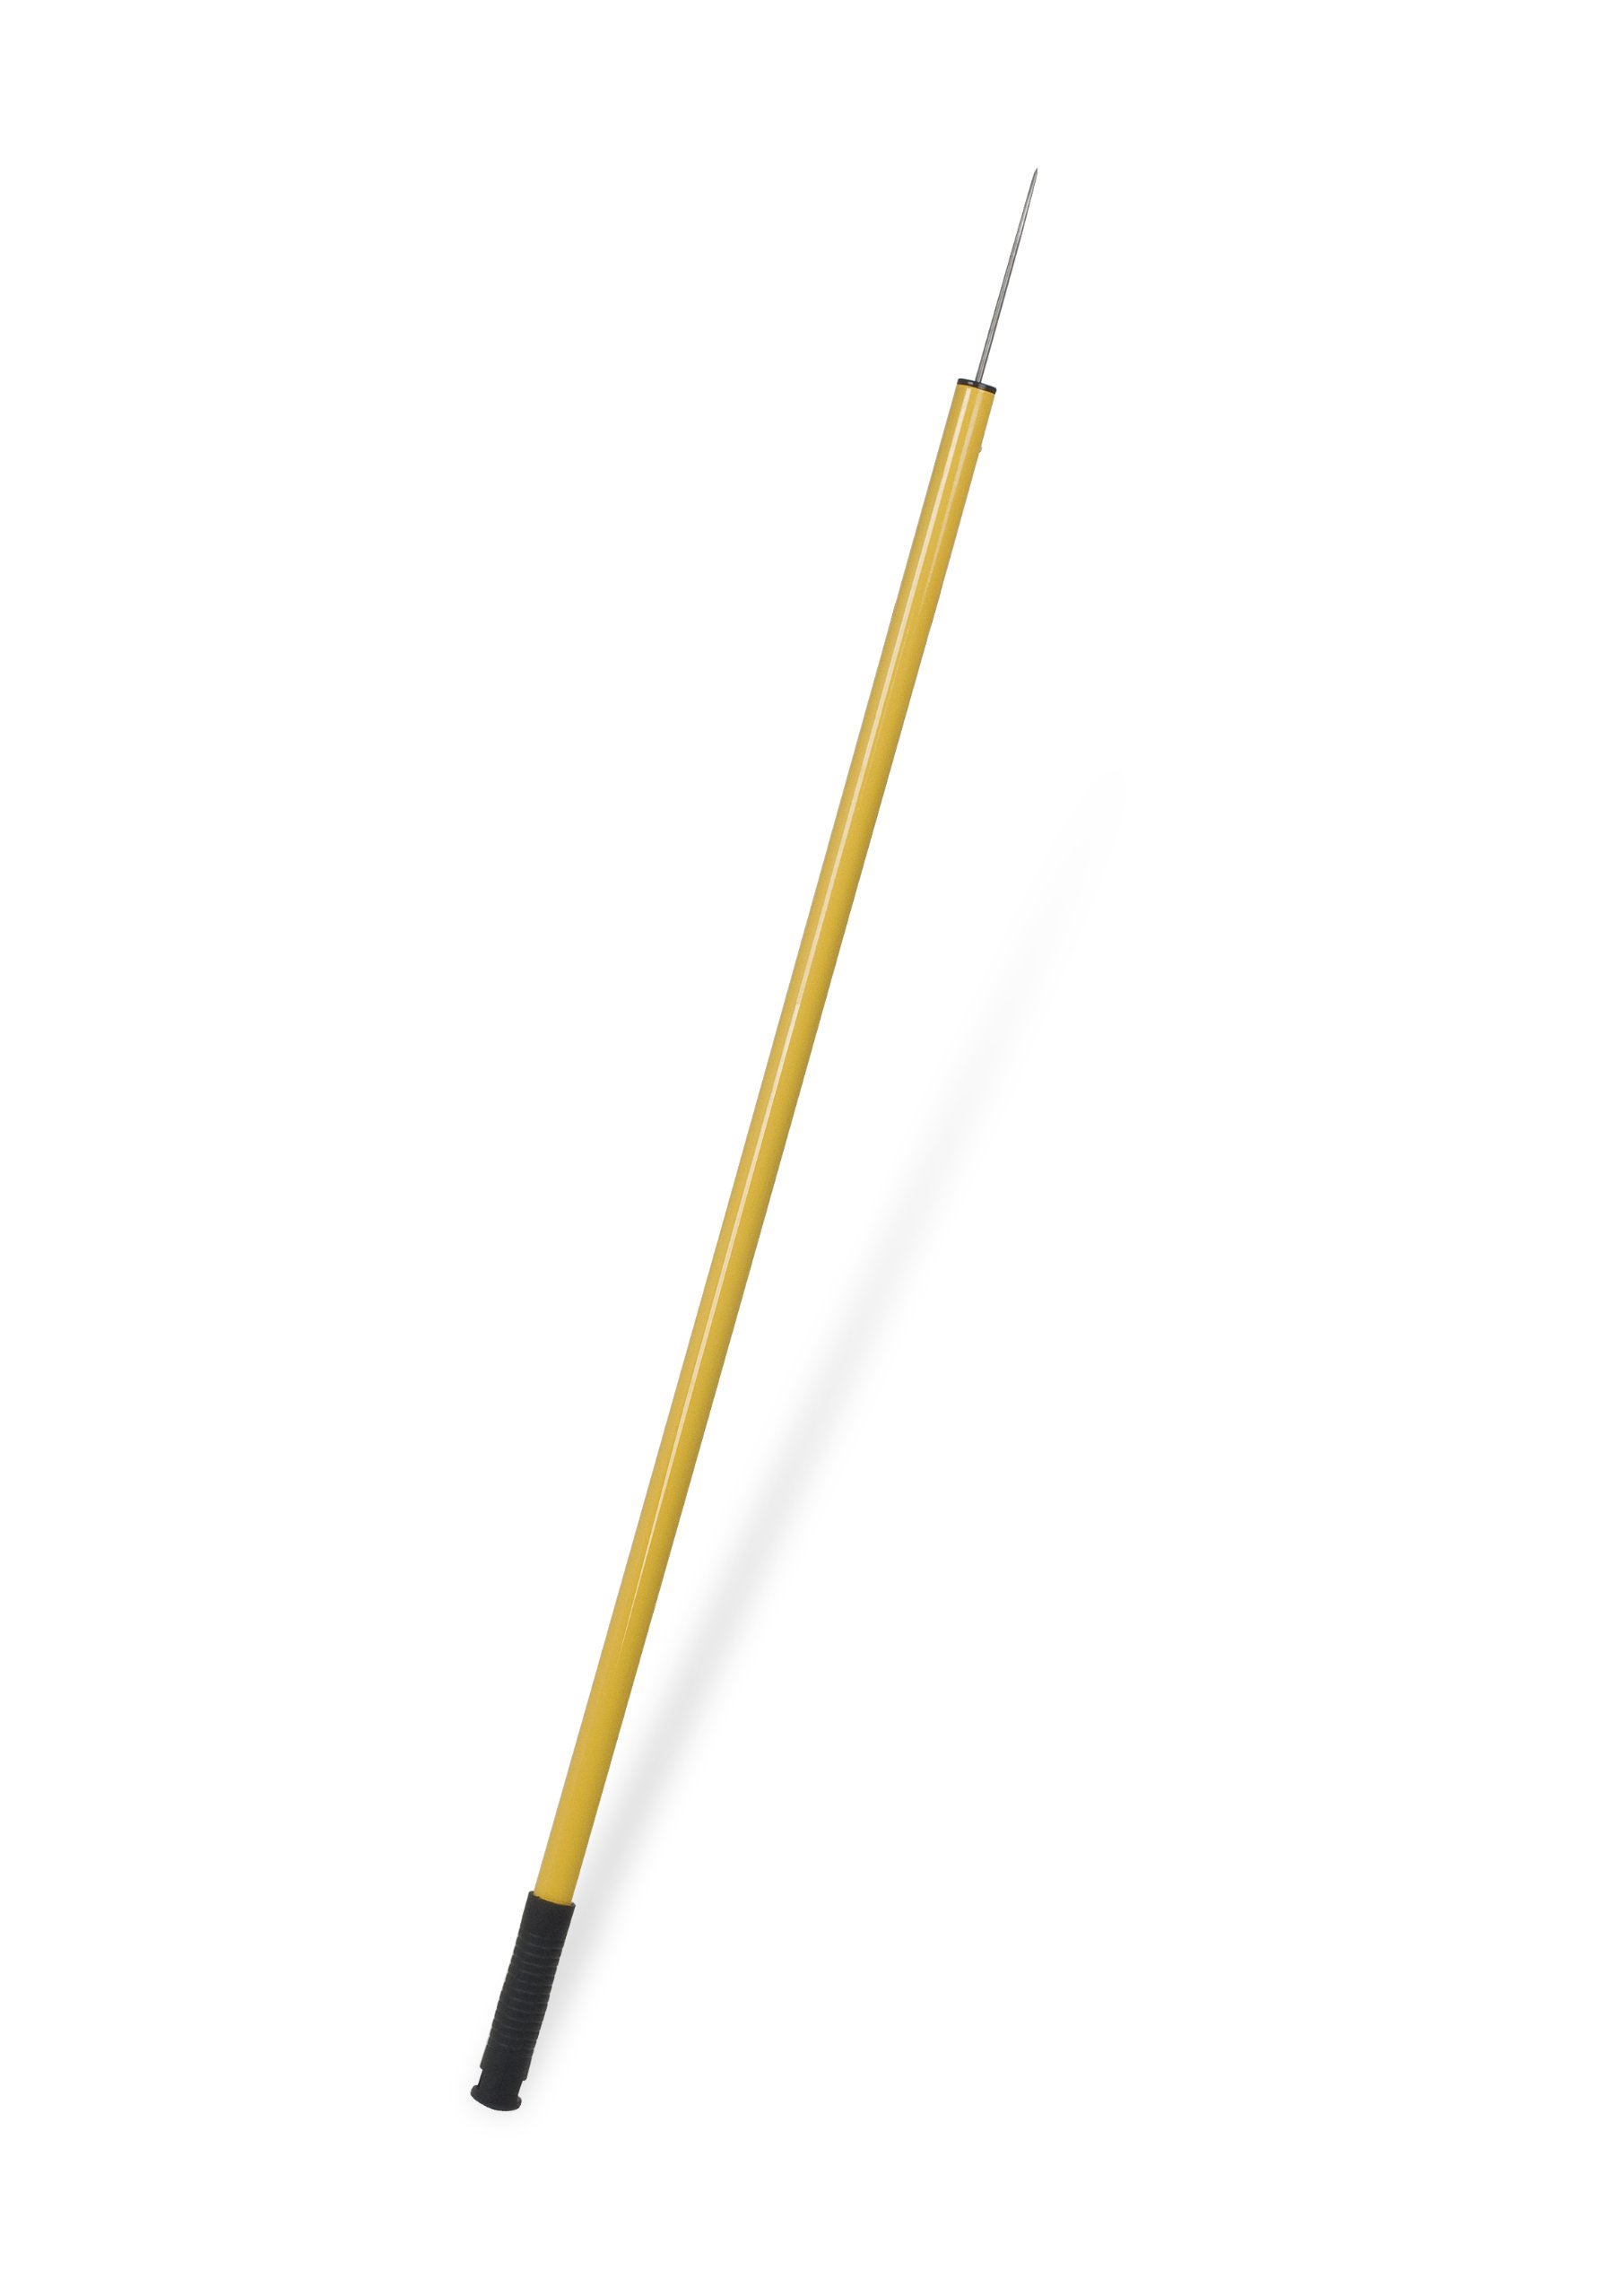 Ettore 49042 Trash Picker Tool with Stainless Steel Tip, 43-Inch